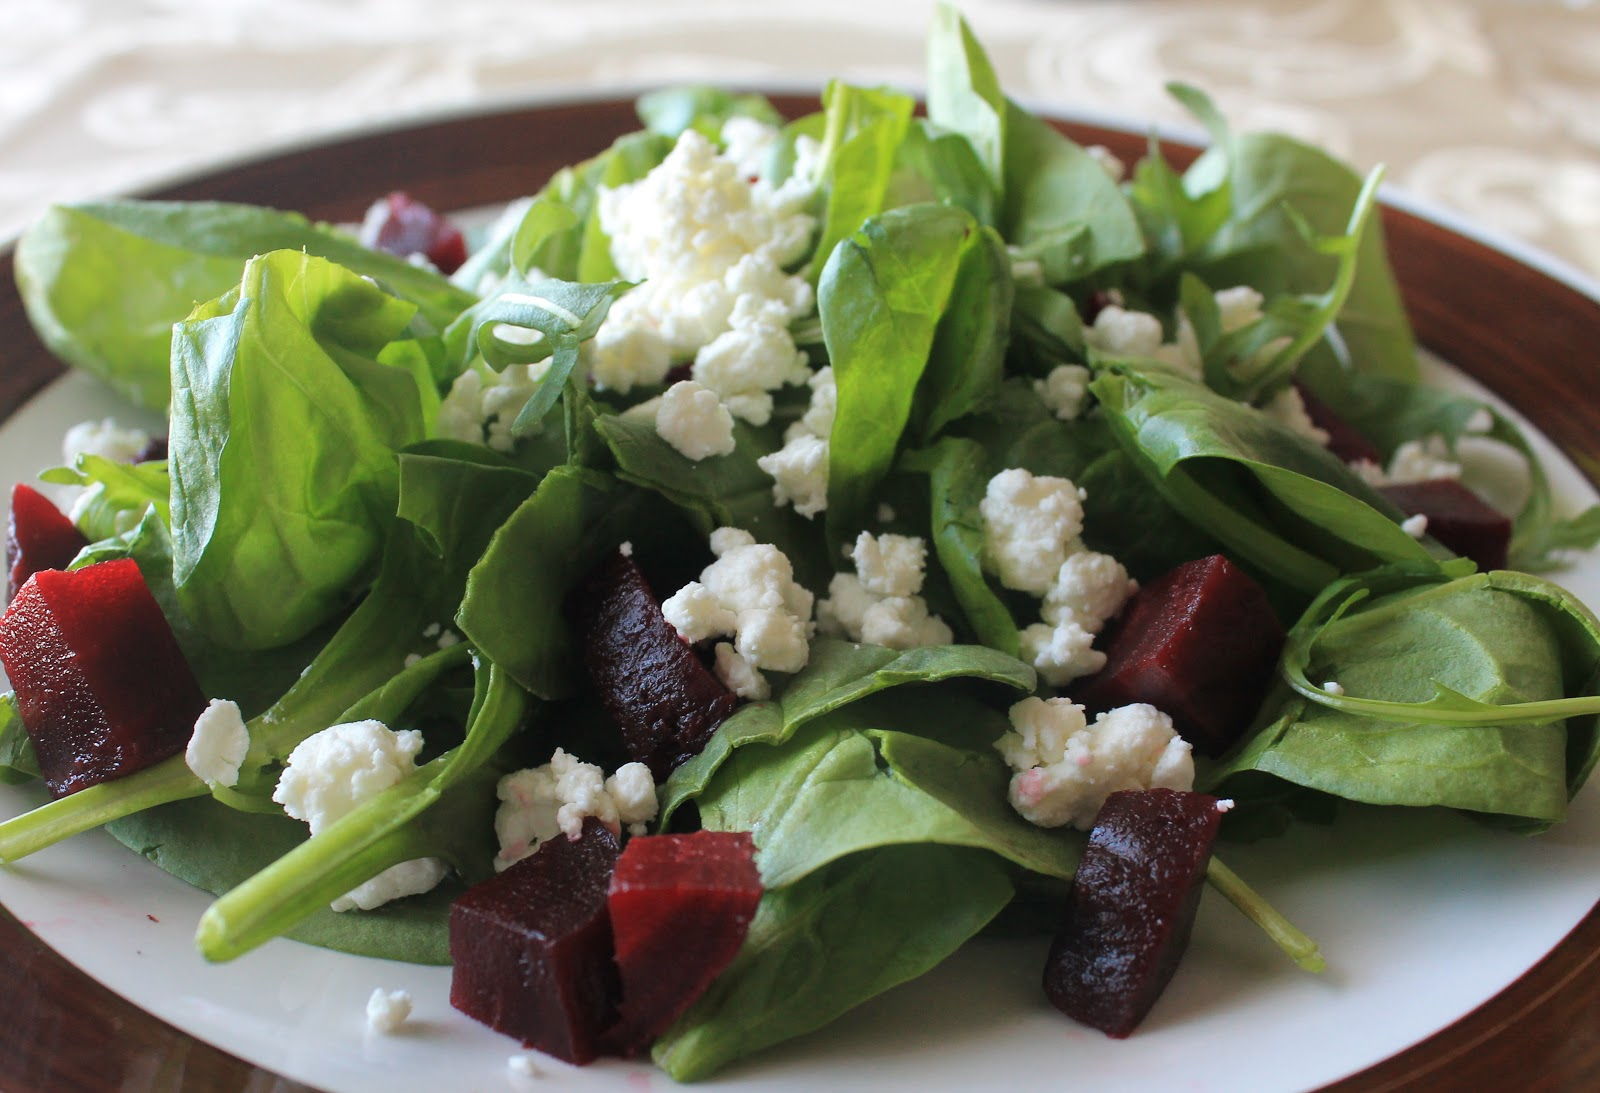 The Cultural Dish: Arugula Salad with Beets and Goat Cheese